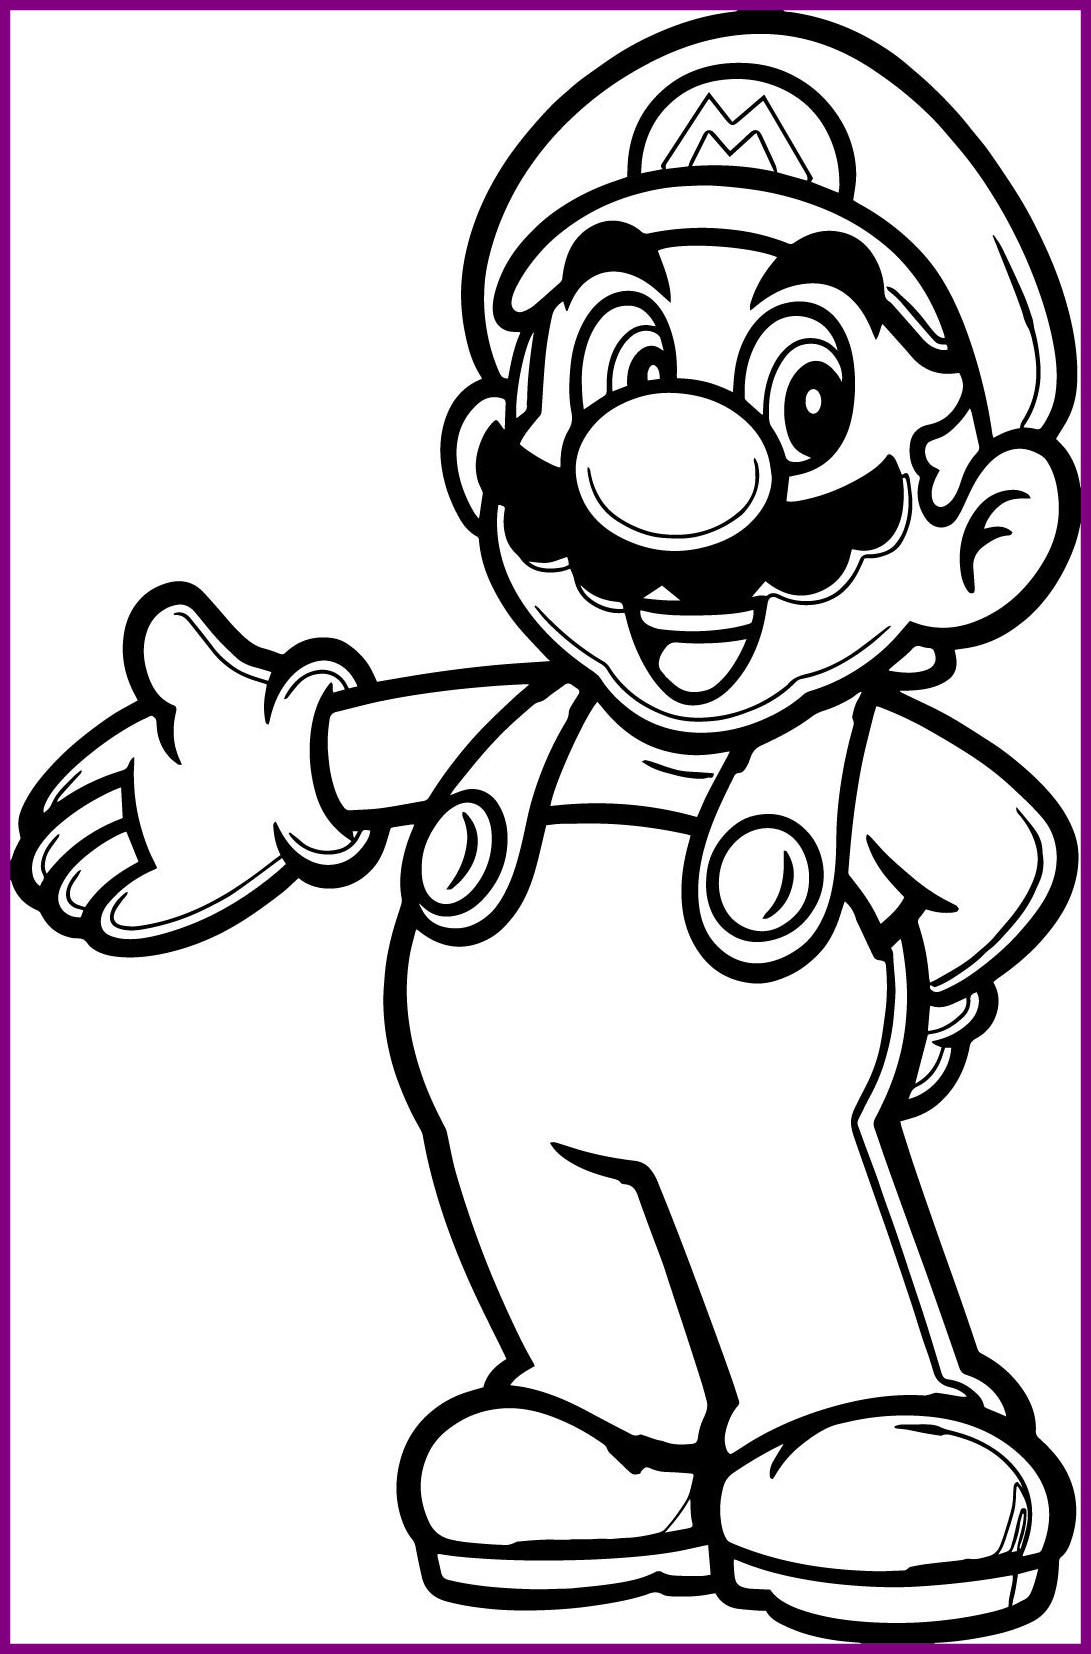 Super Mario Maker Coloring Pages At Getcolorings